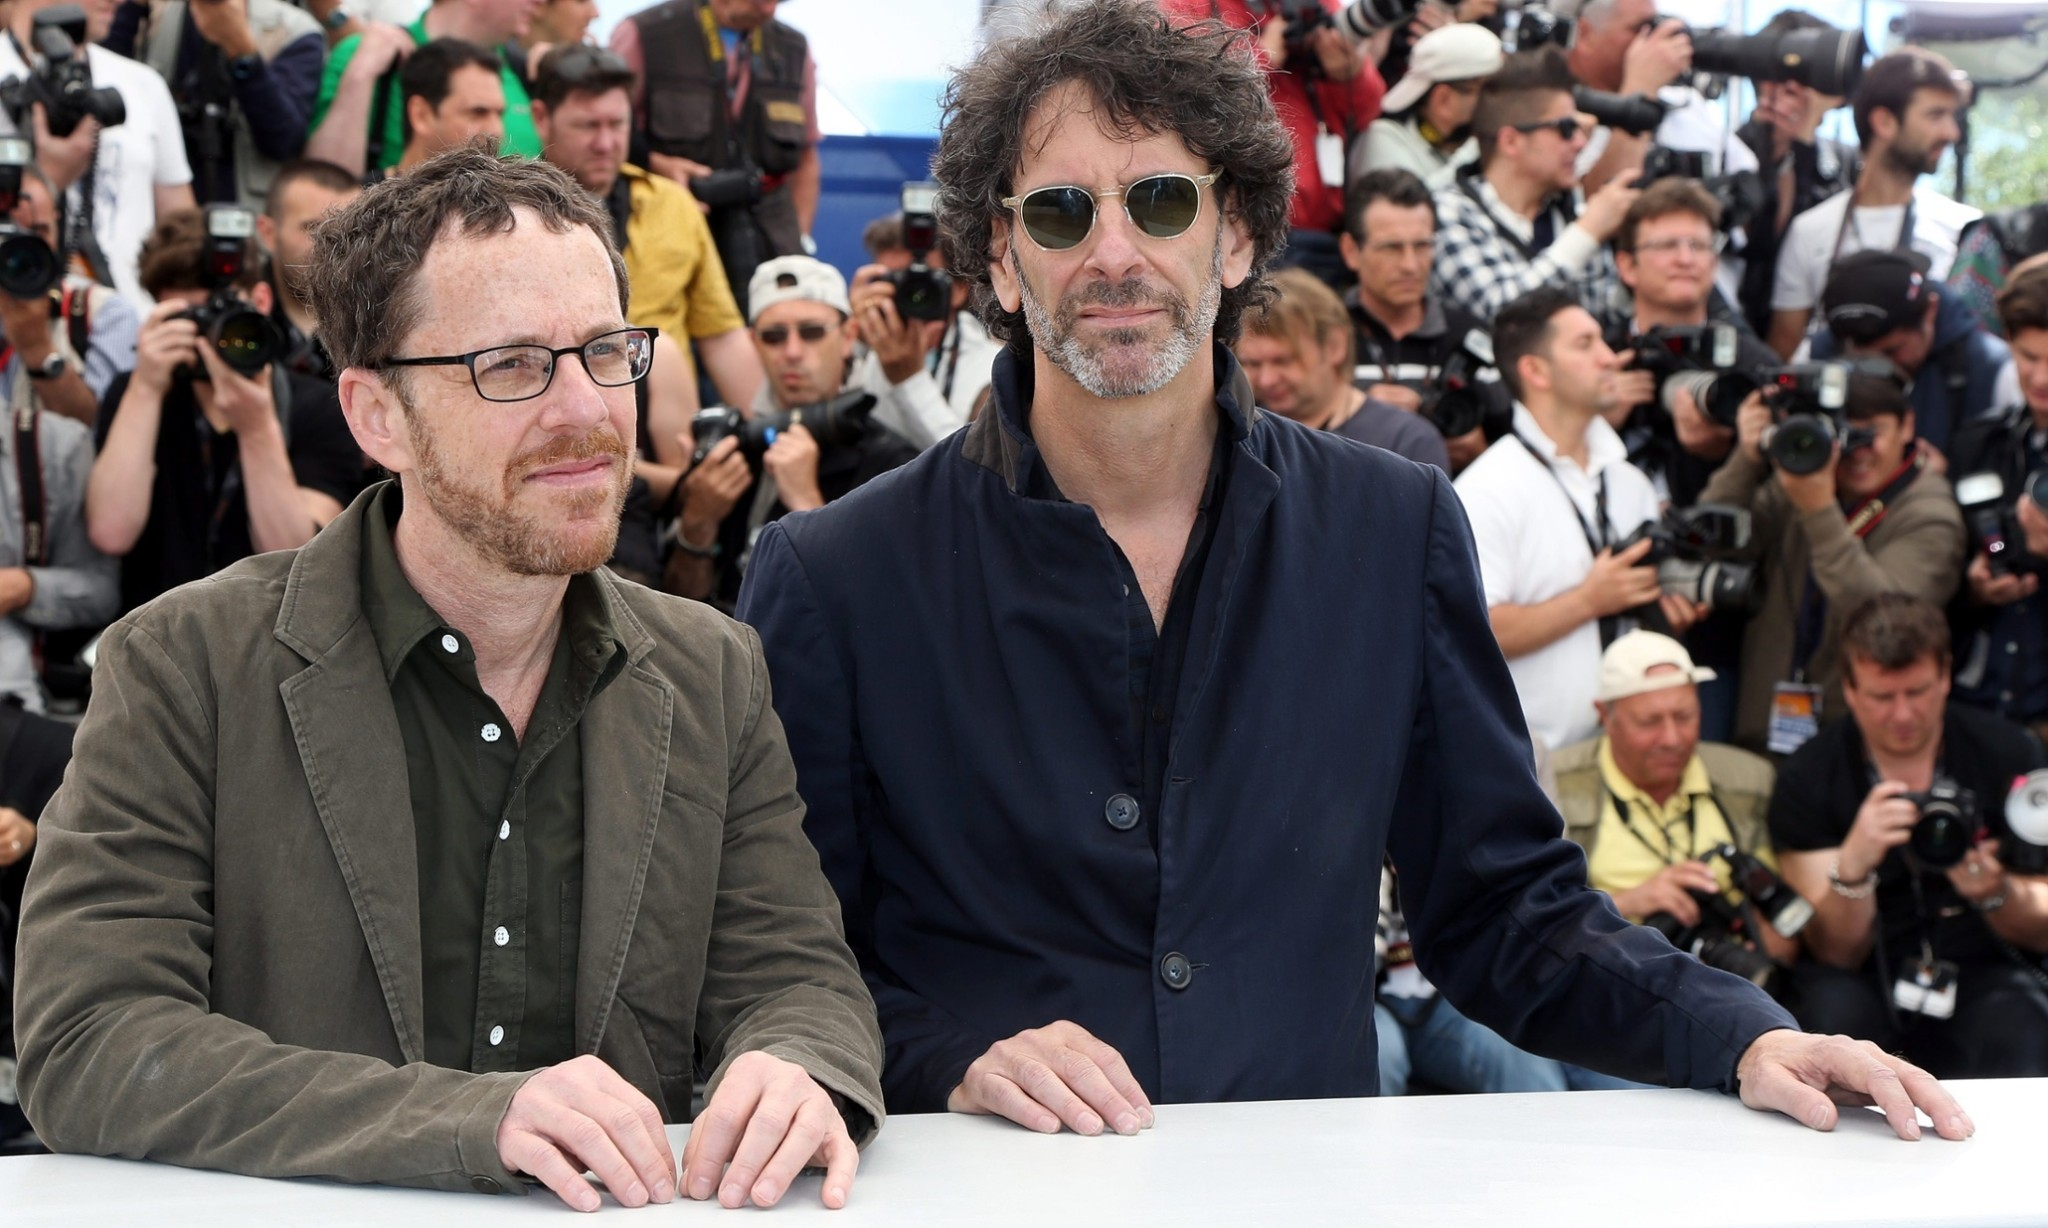 Coen brothers named heads of 2015 Cannes film festival jury